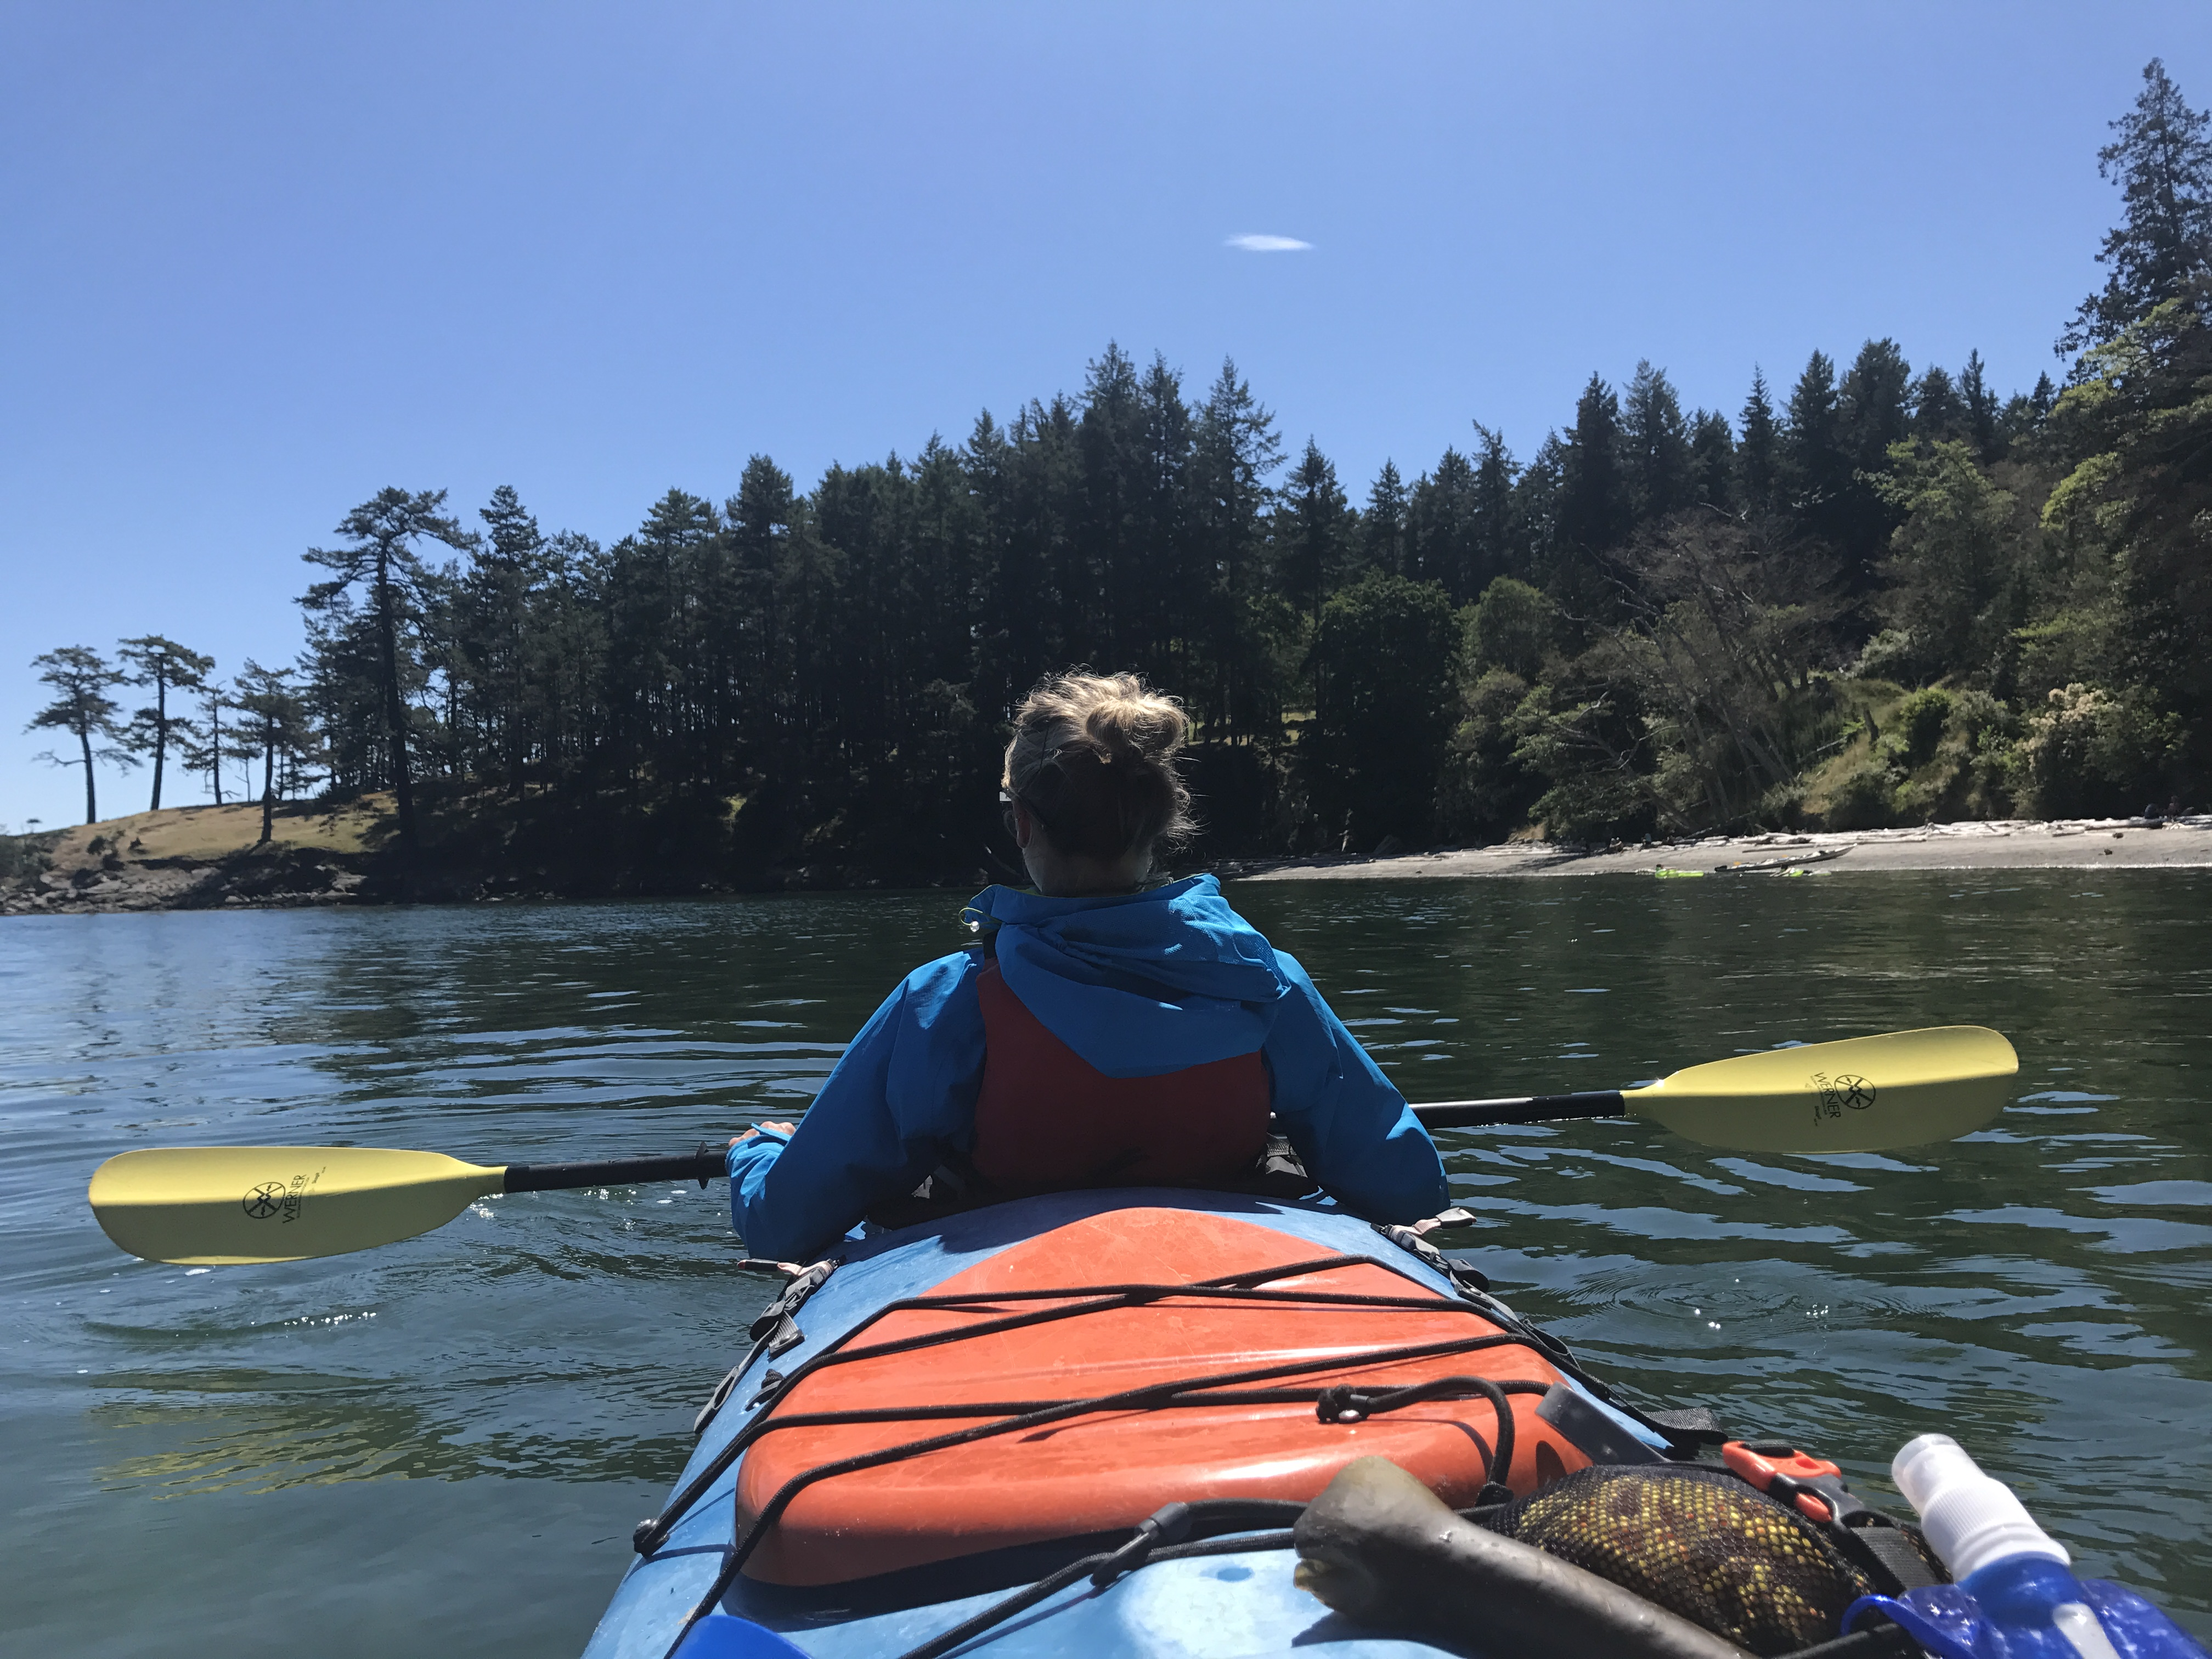 Me kayaking - point of view of the second kayaker.